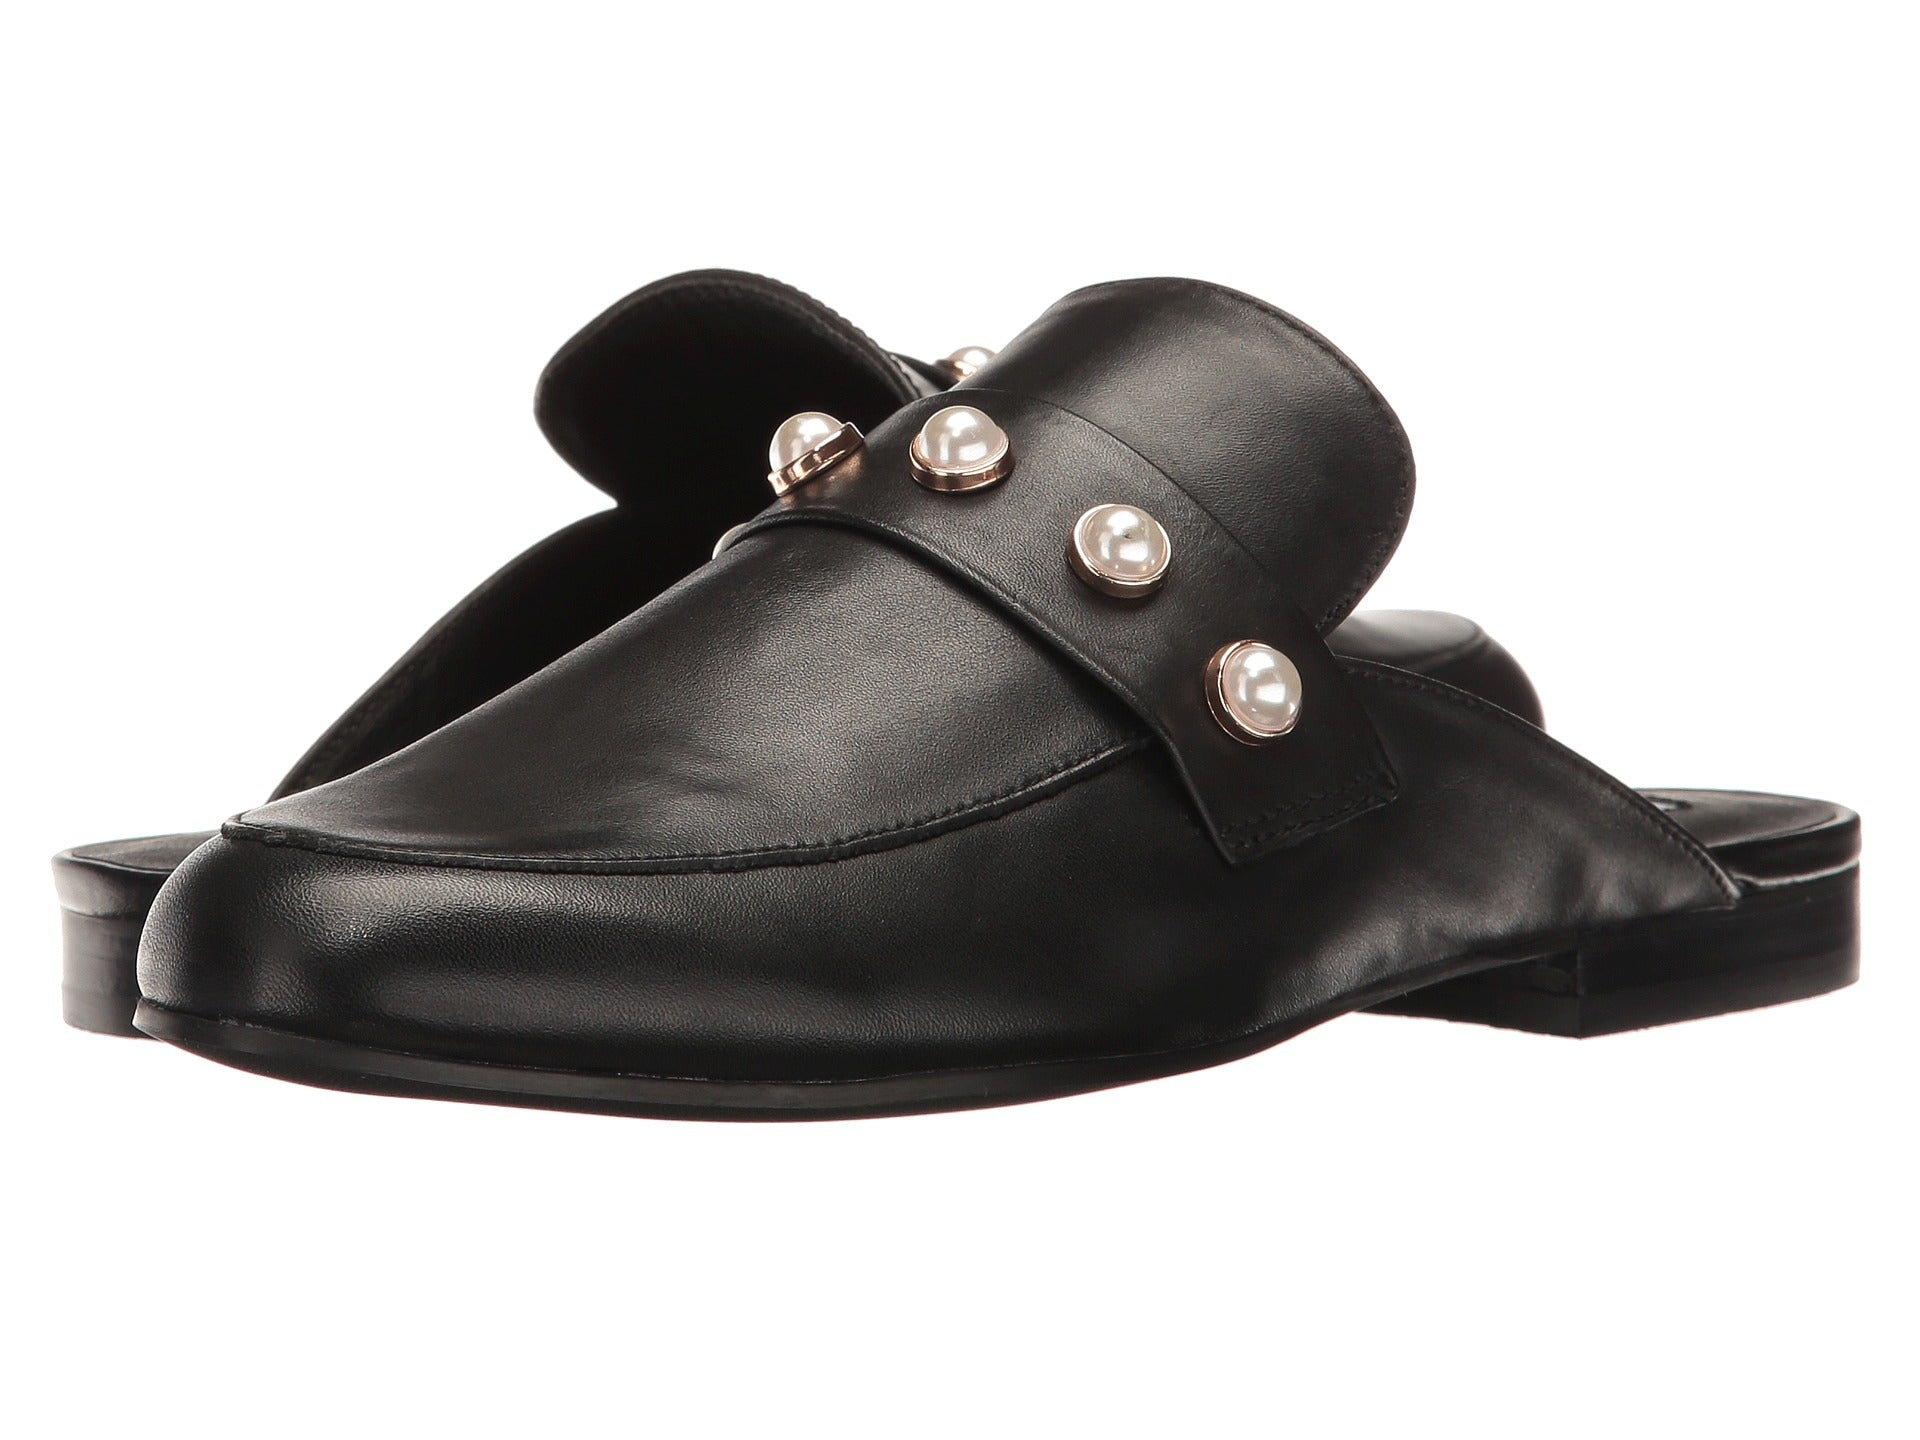 Steve Madden Kandi-P-Black Leather